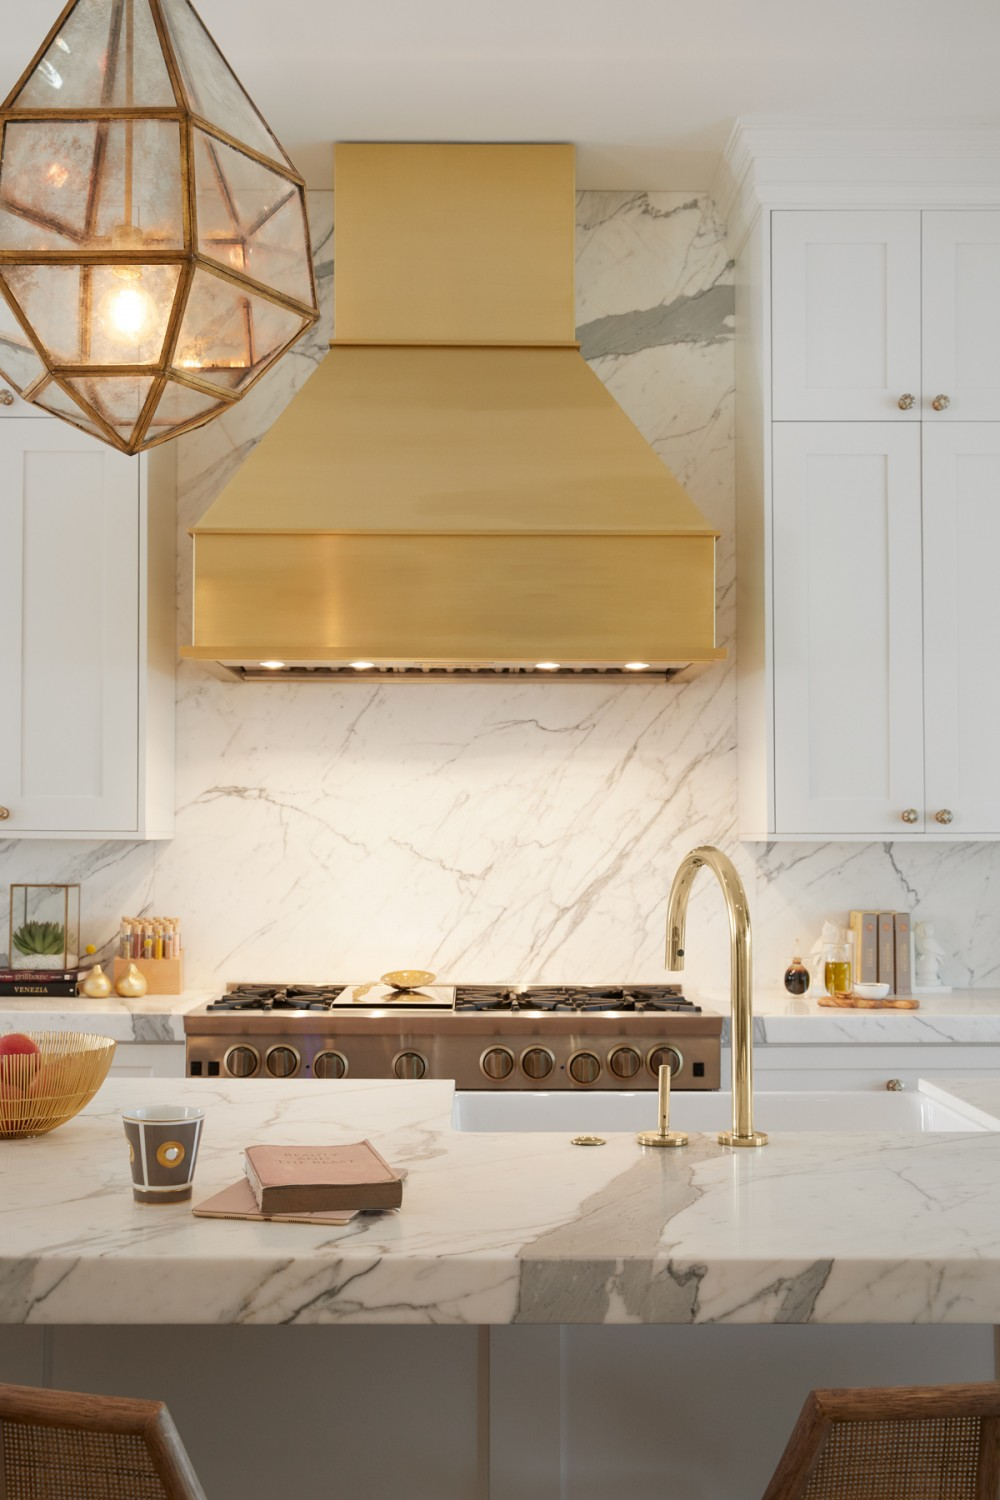 One™ kitchen faucet   Whitehaven® Hayridge kitchen sink    Brass makes a beautifully bold statement in the kitchen.